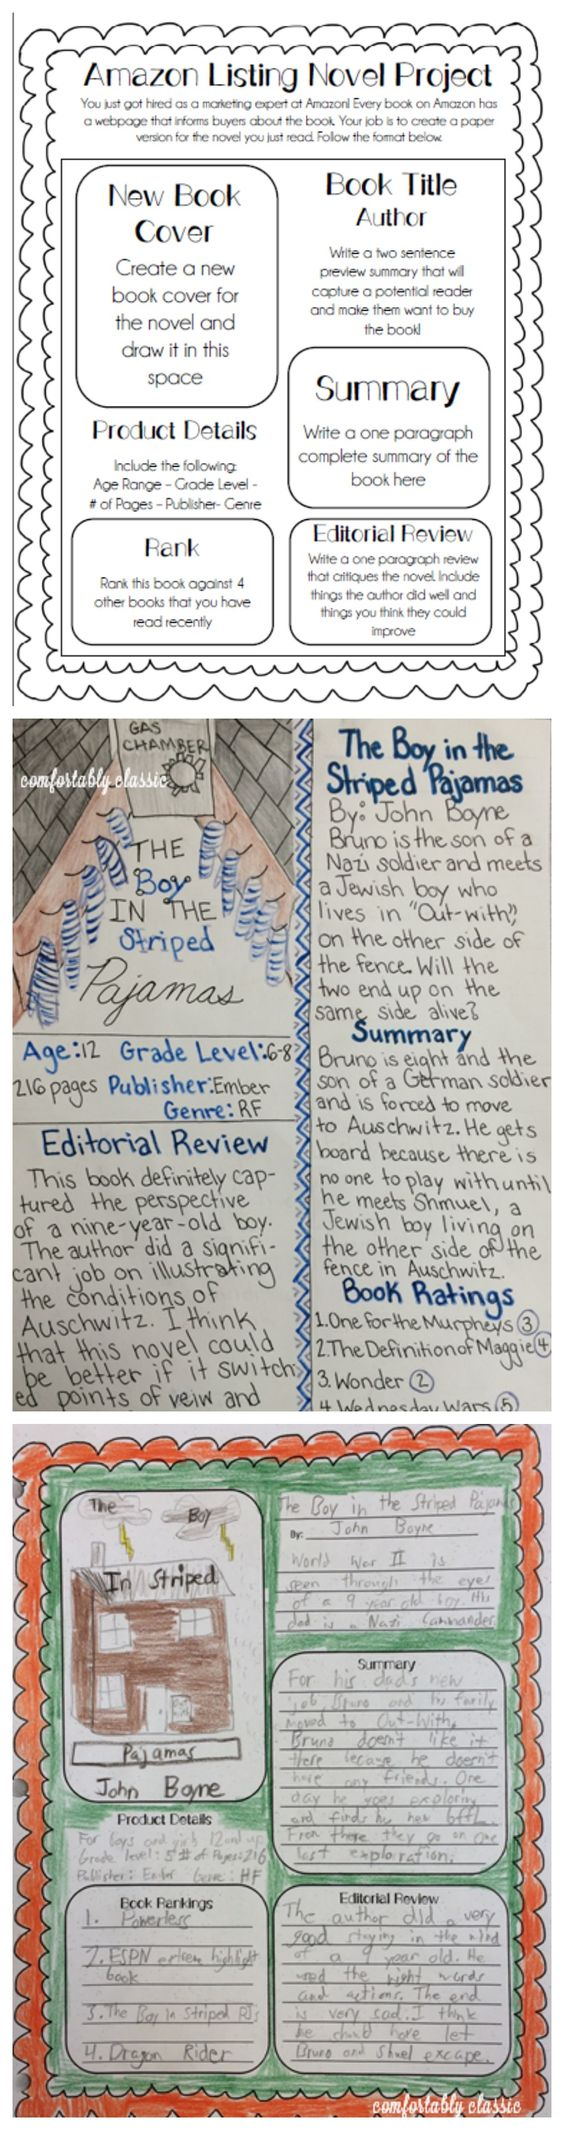 Book Report Guidelines For 6th Grade Research Paper Help